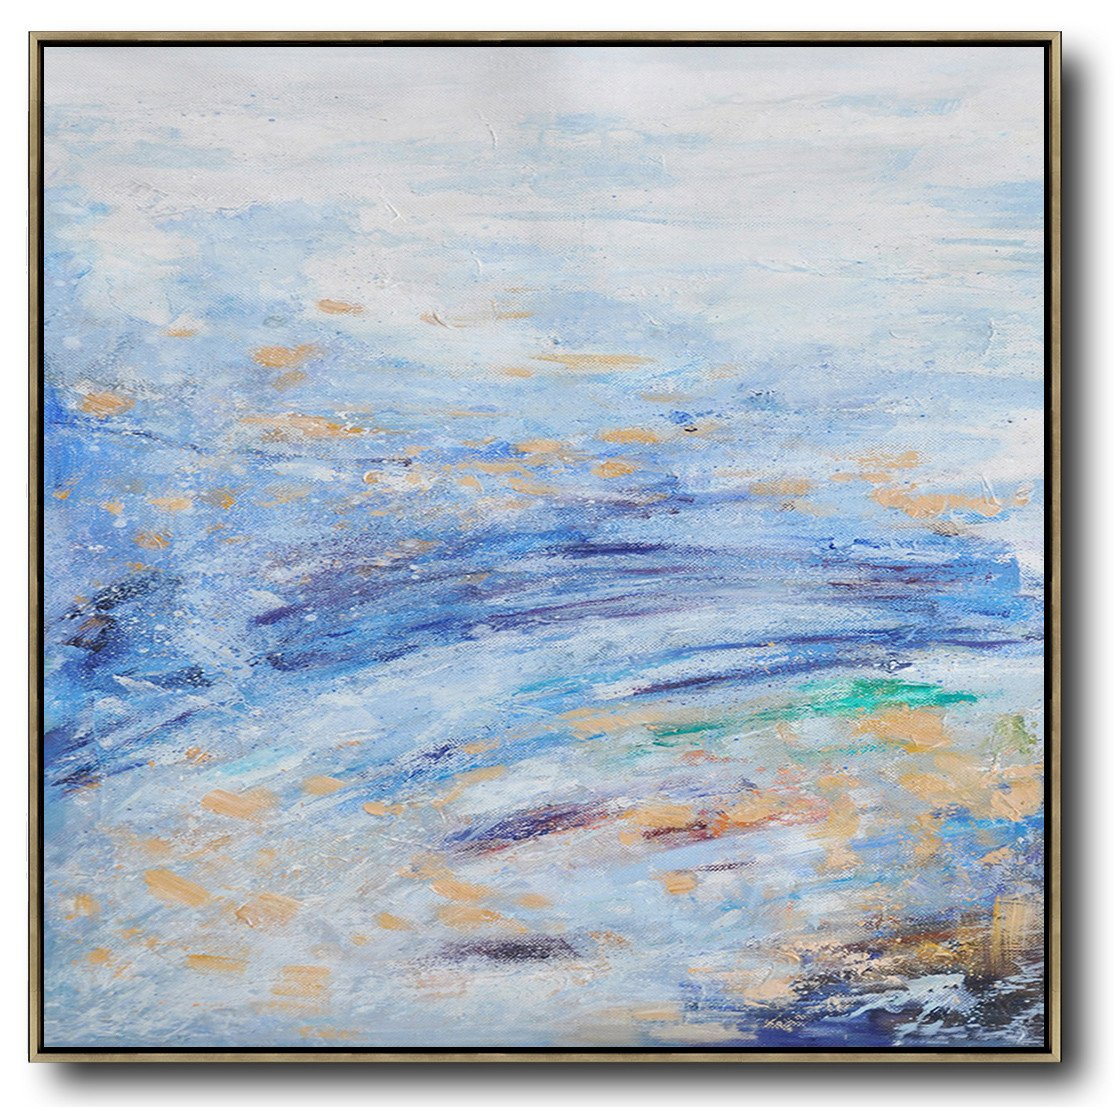 Handmade Large Contemporary Art,Oversized Abstract Landscape Oil Painting,Canvas Wall Paintings,Blue,White,Blue.etc